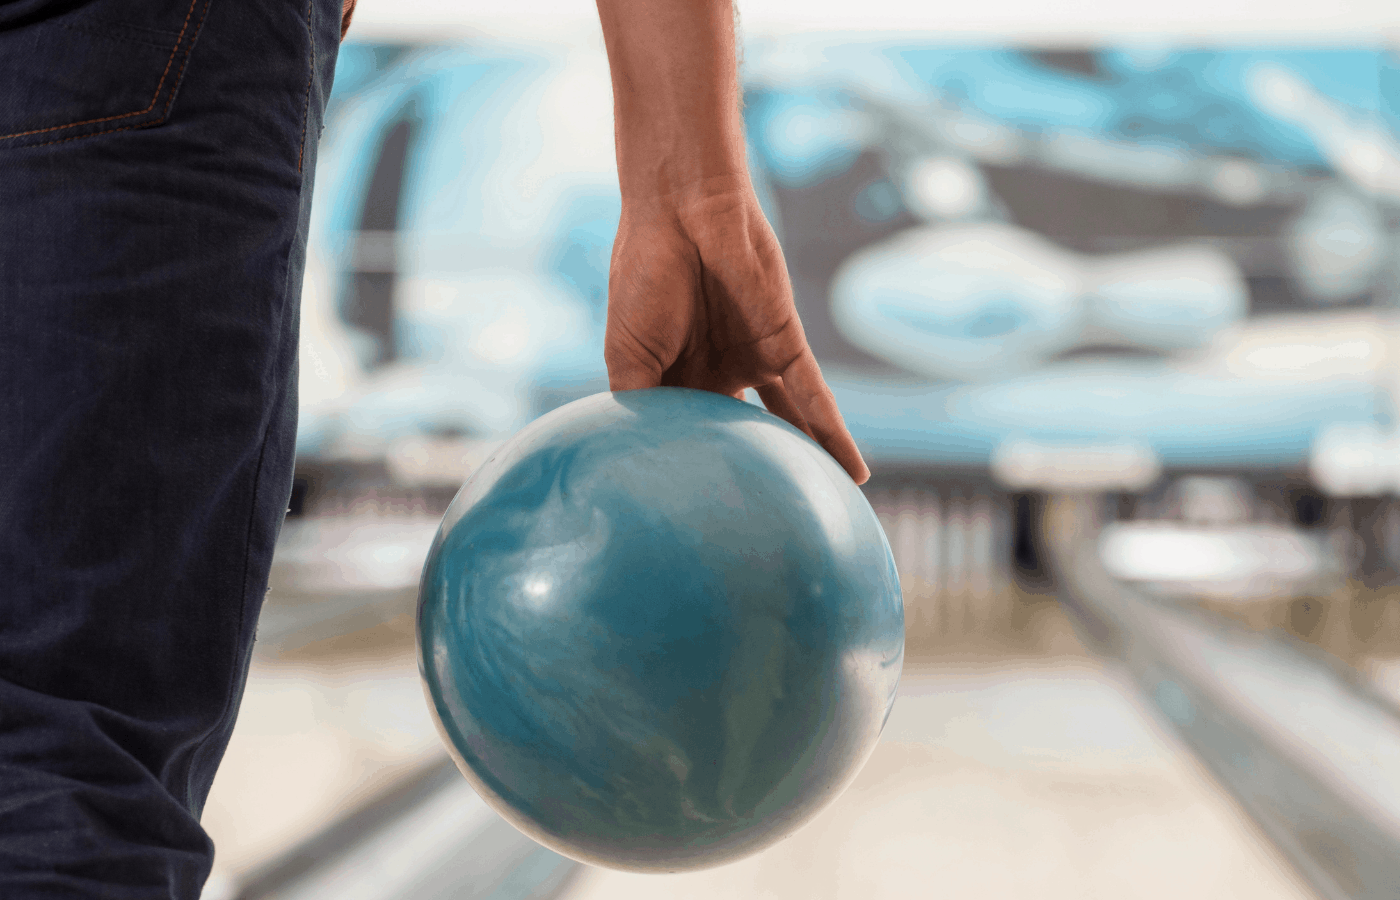 Why Does My Thumb Get Stuck in My Bowling Ball